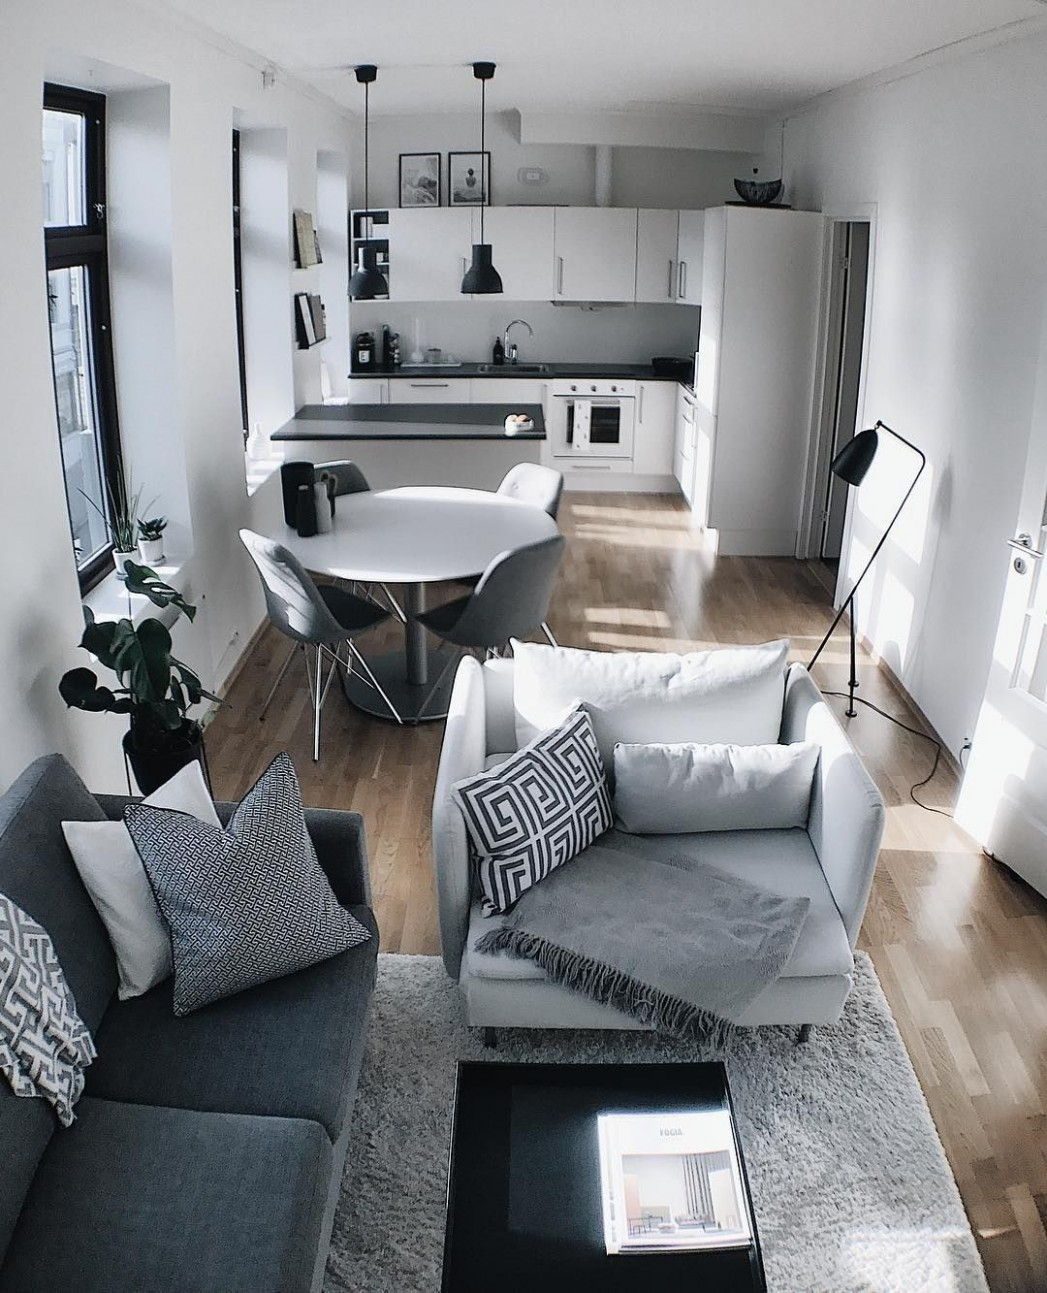 12 Apartment Decorating Ideas On a Budget For a Beautiful Space  - Apartment Decorating Ideas Ideas